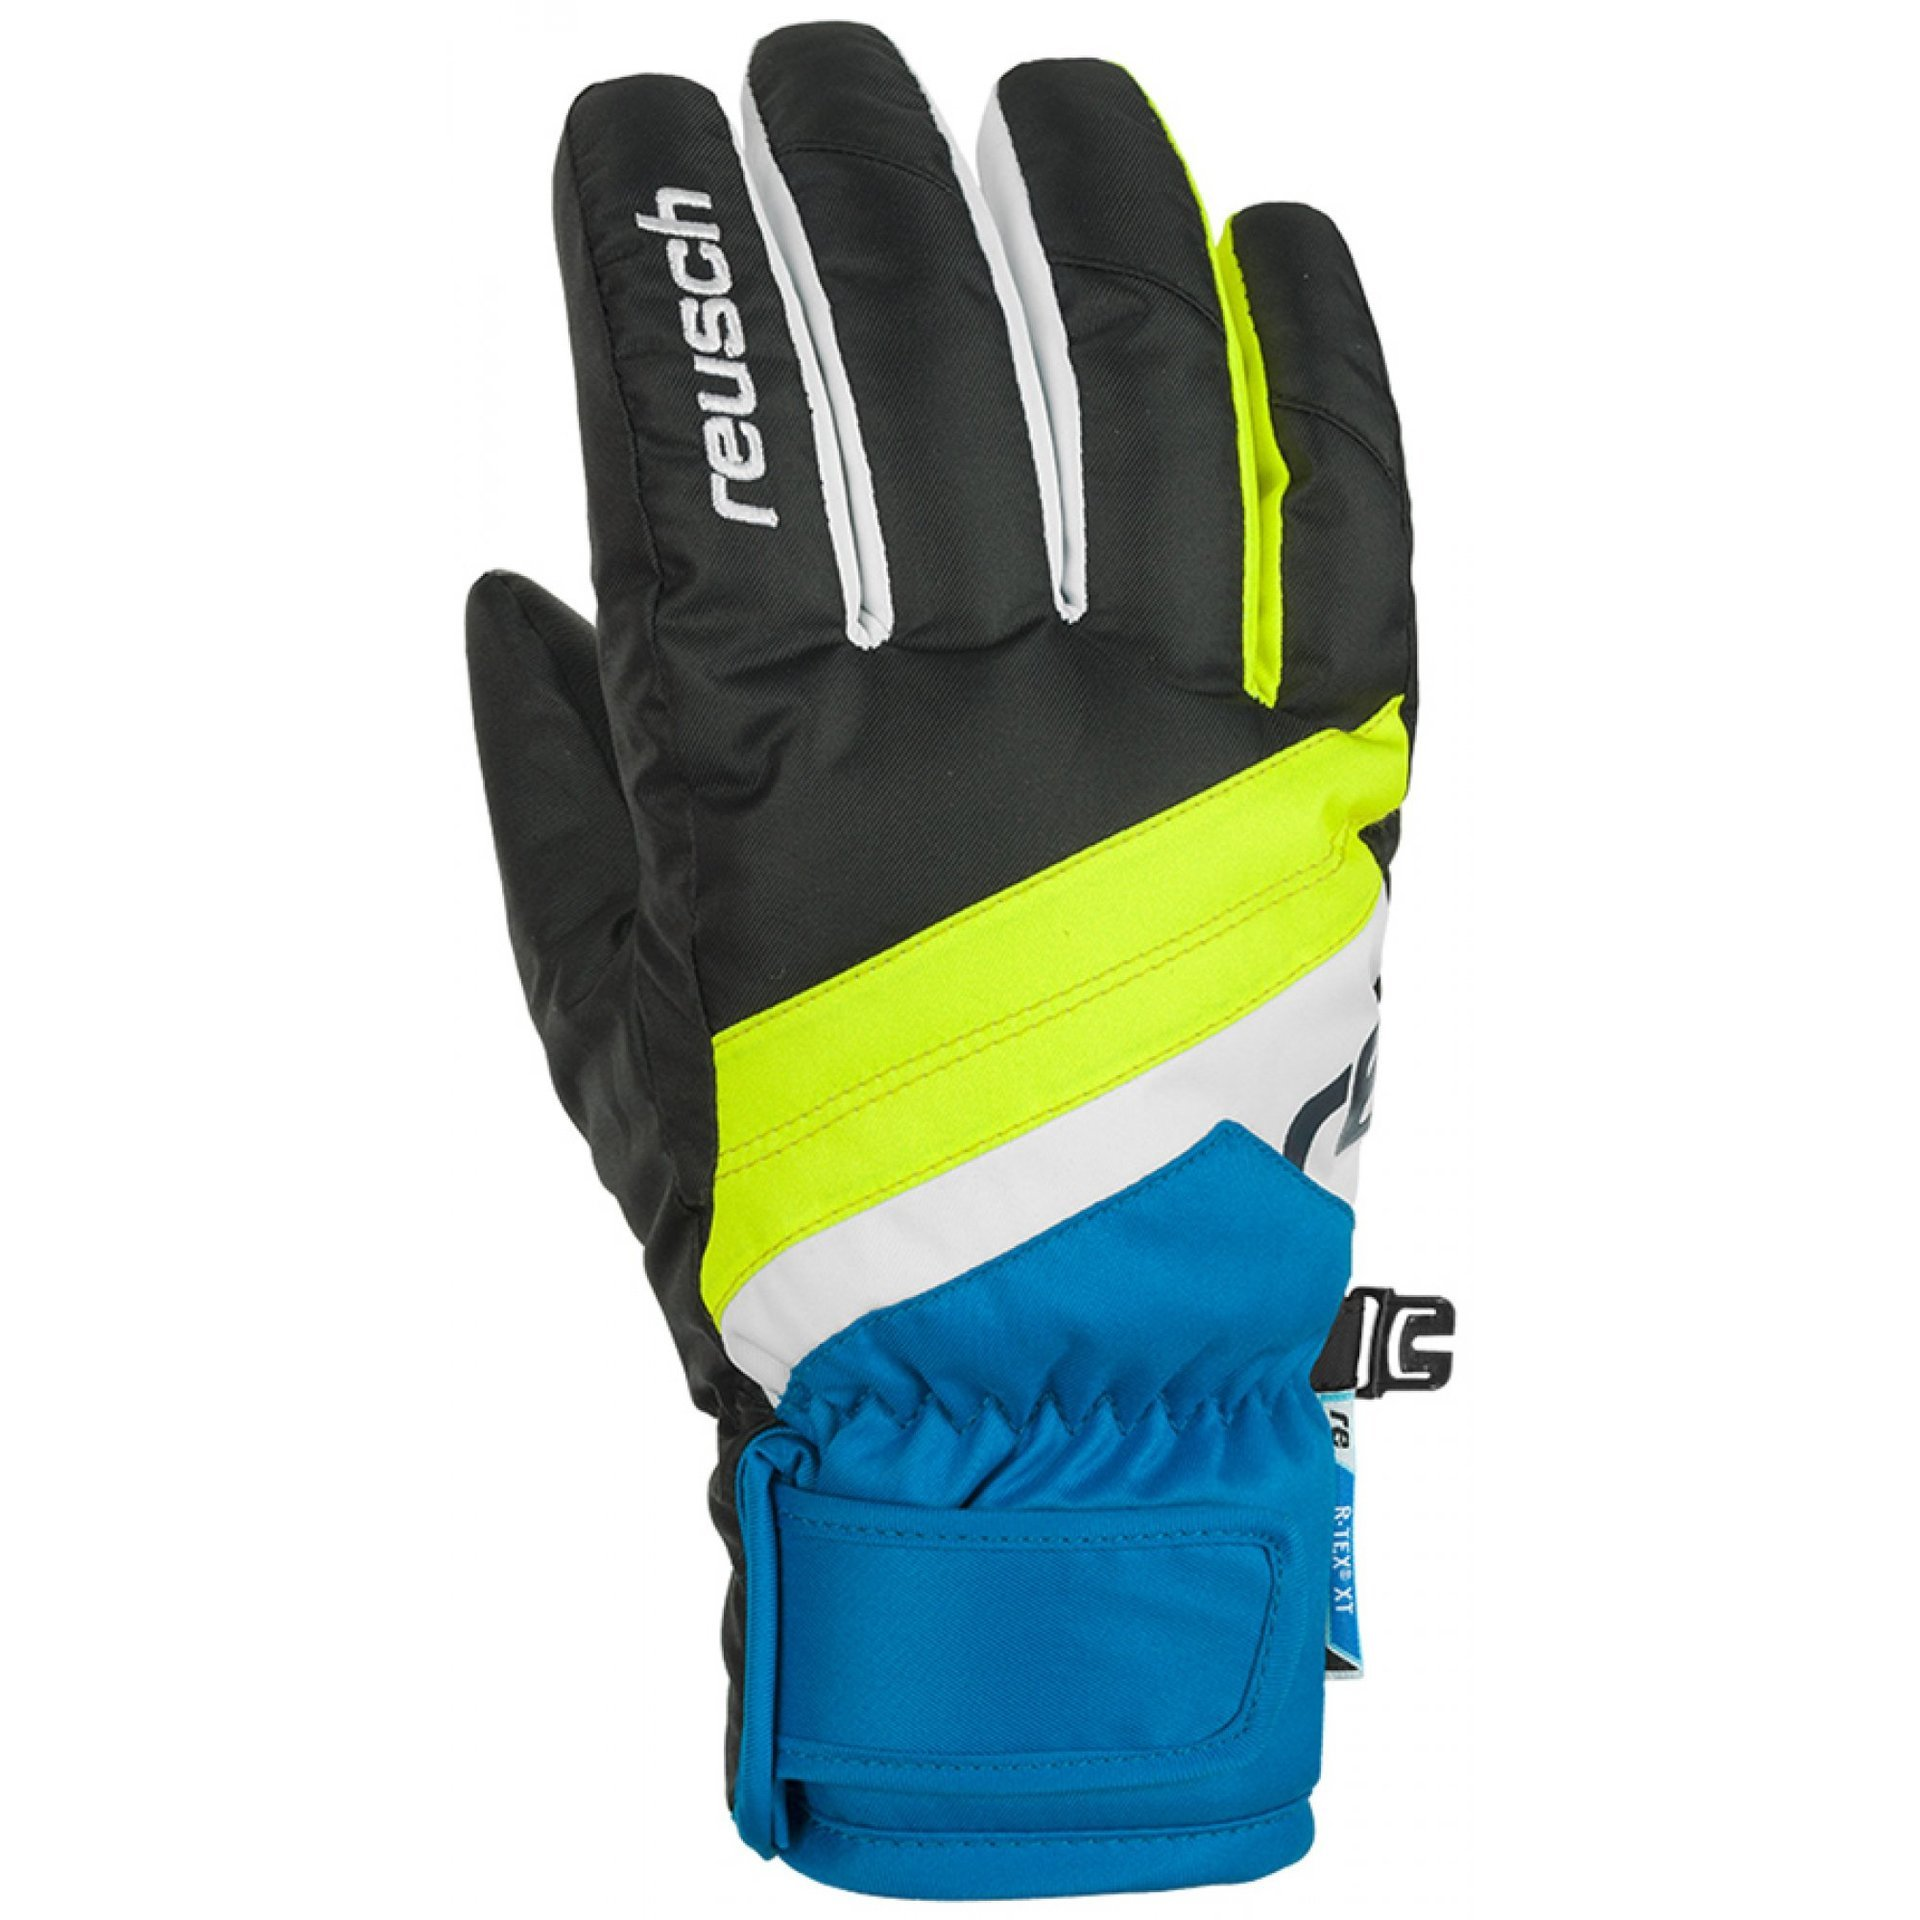 RĘKAWICE REUSCH DARIO R-TEX XT JUNIOR BLACK BRILLIANT BLUE 760